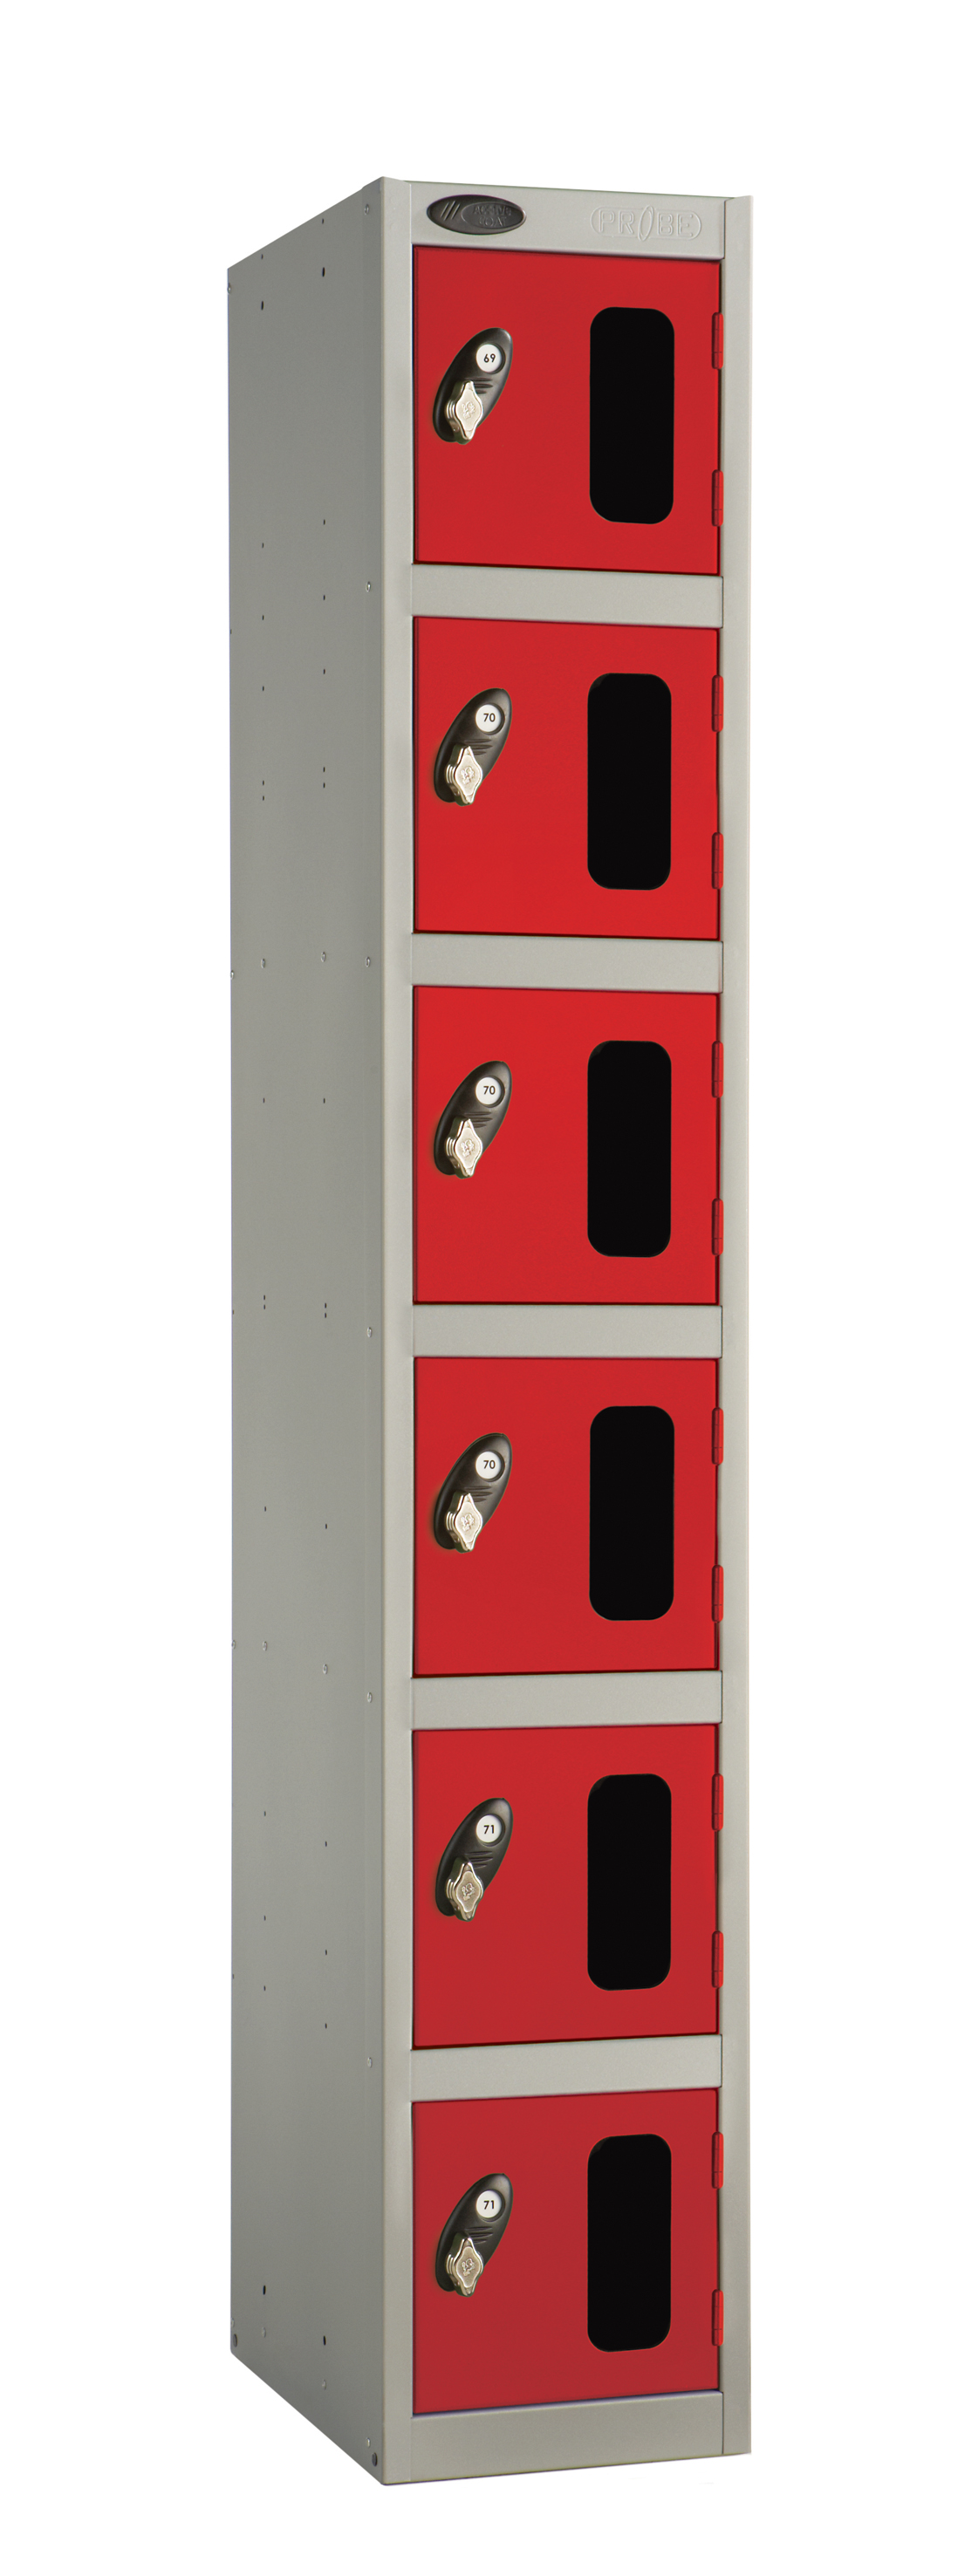 Six Compartment Vision Panel Security Locker